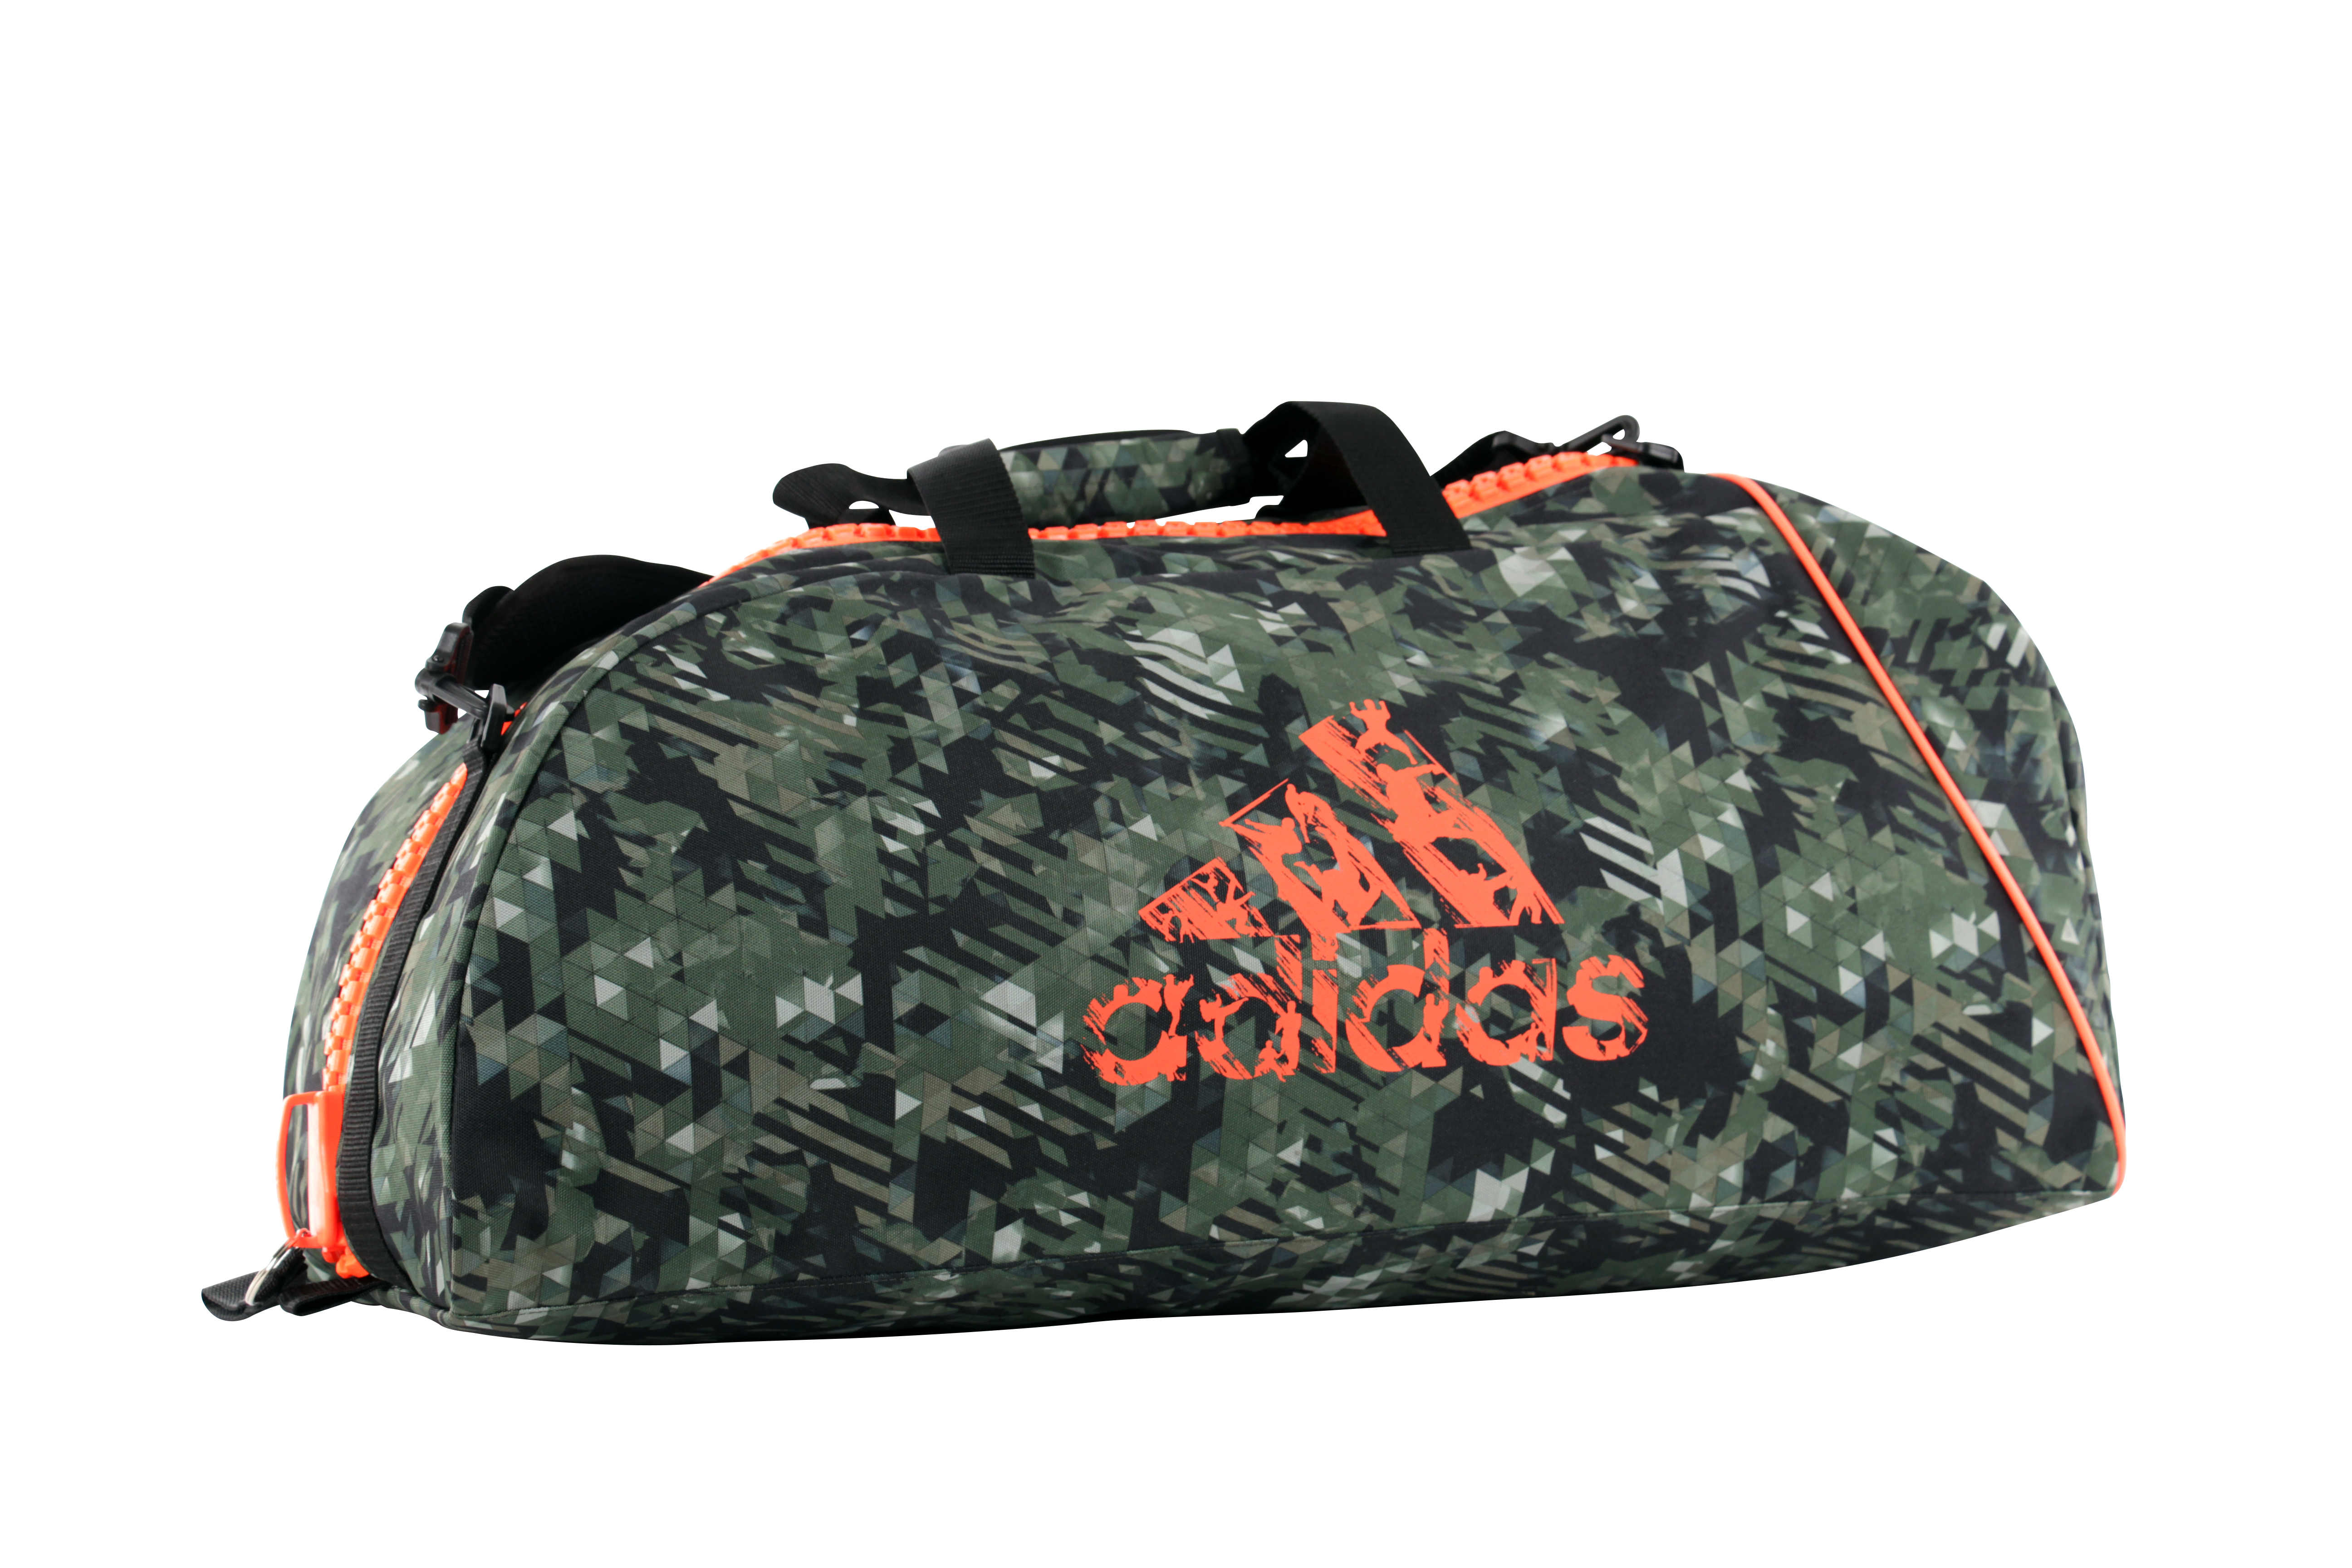 0b6c942d2b Adidas Combat Sports Bag Large - Giri Martial Arts Supplies